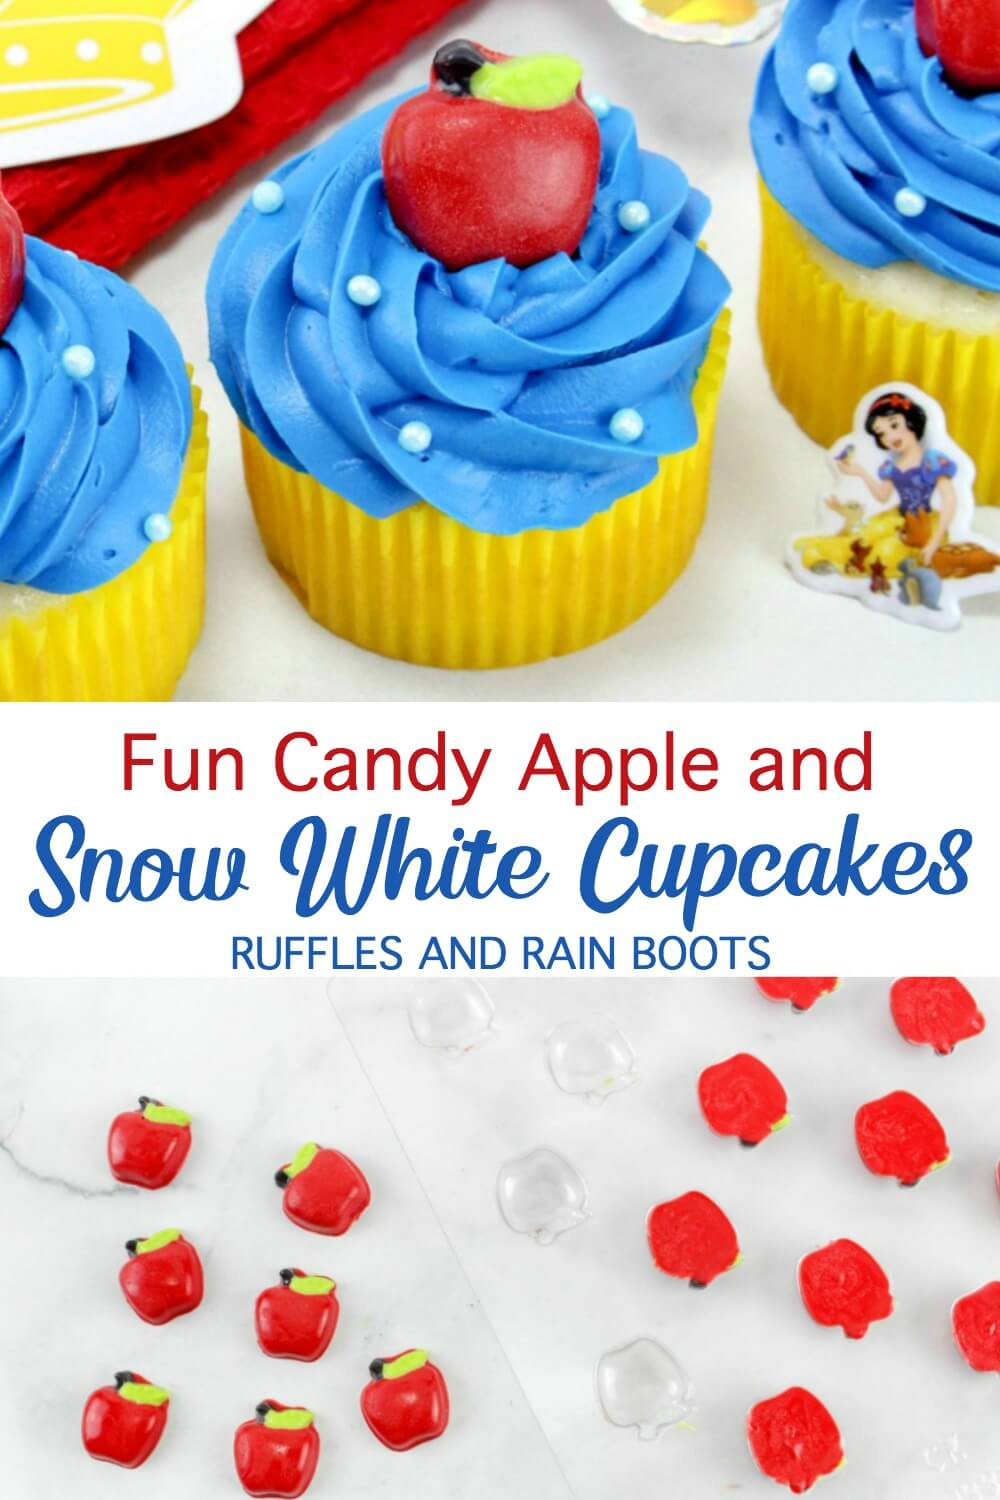 photo collage of candy apples and blue cupcakes on white background with text which reads snow white cupcakes